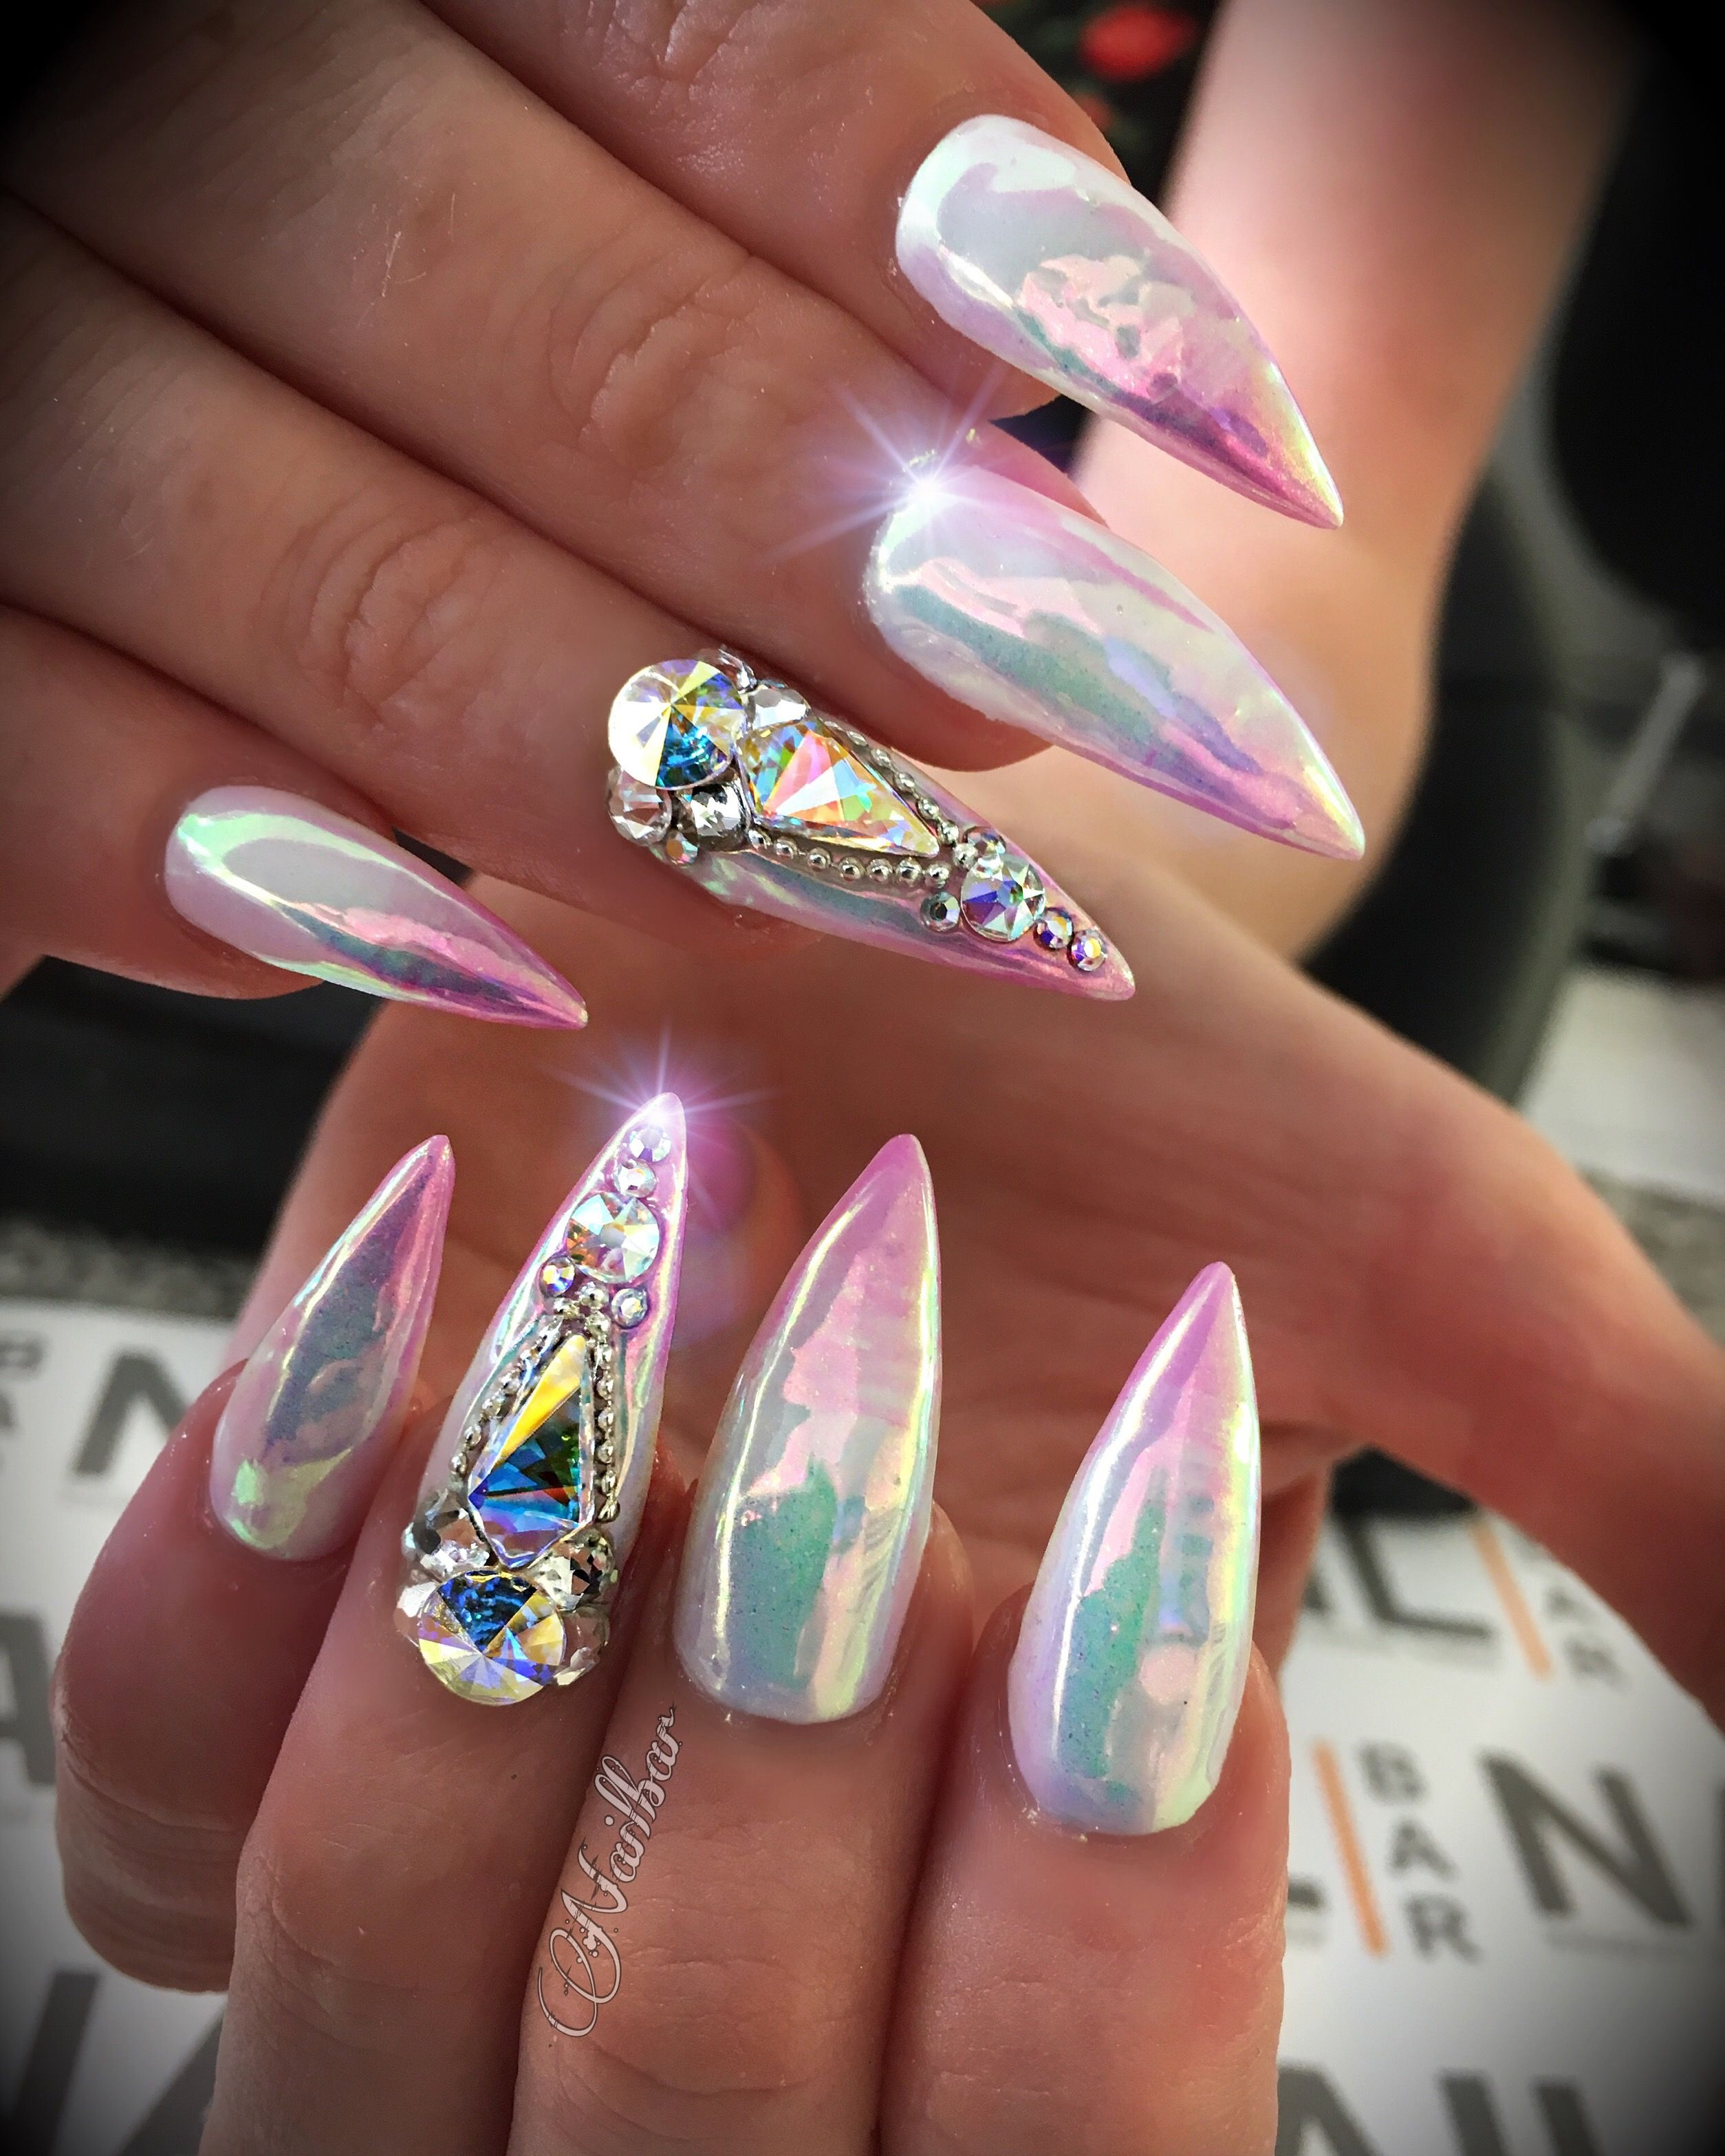 Pin de Luz Martinez en nails | Pinterest | La uña, Bellisima y Color